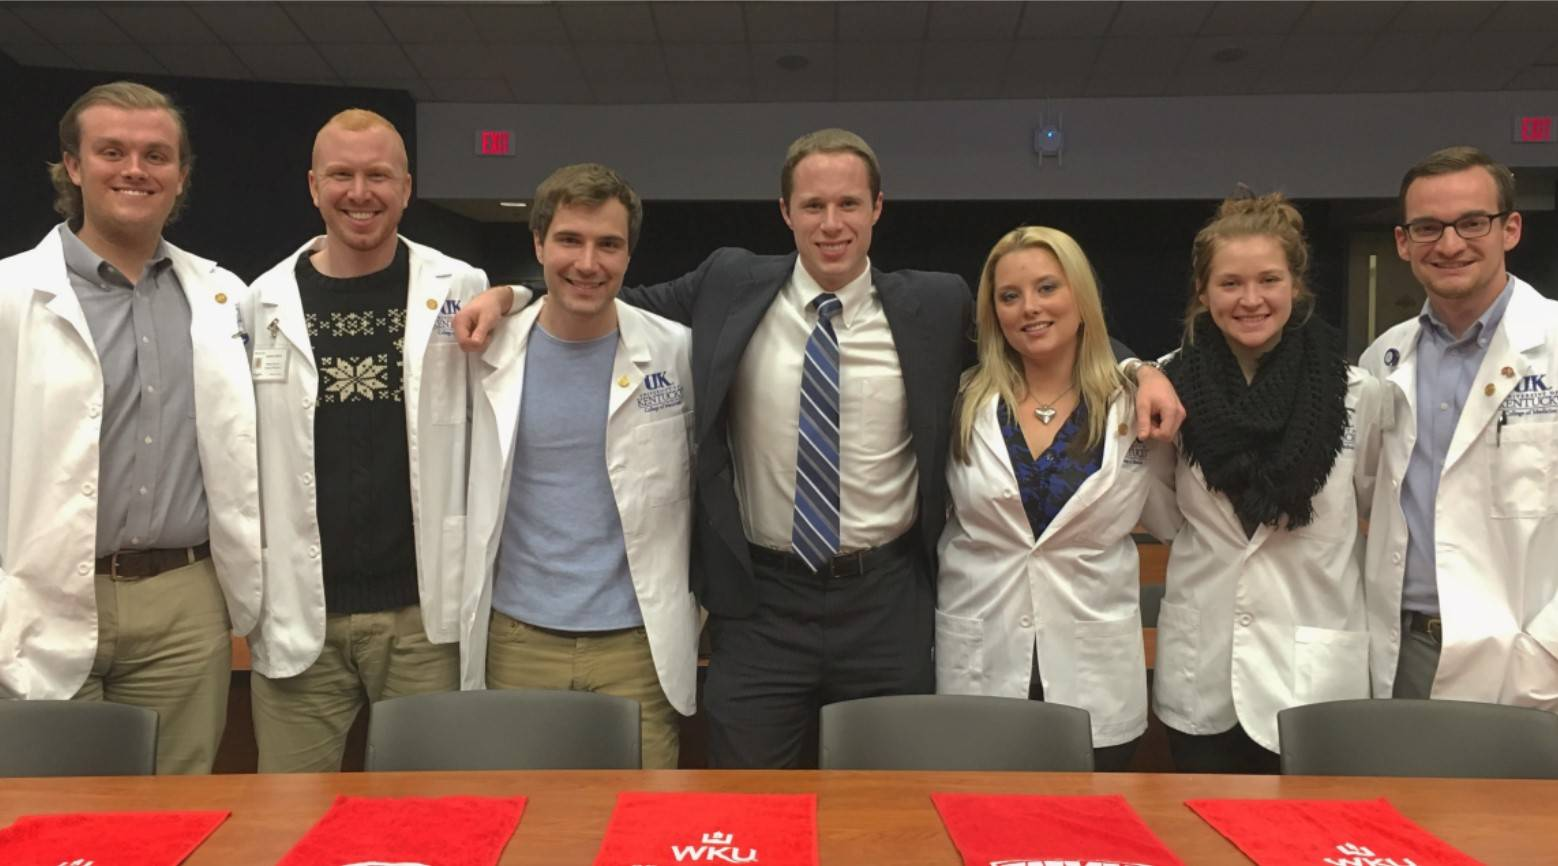 WKU Fall 2015 graduates now attending UK Medical school - class of 2019.